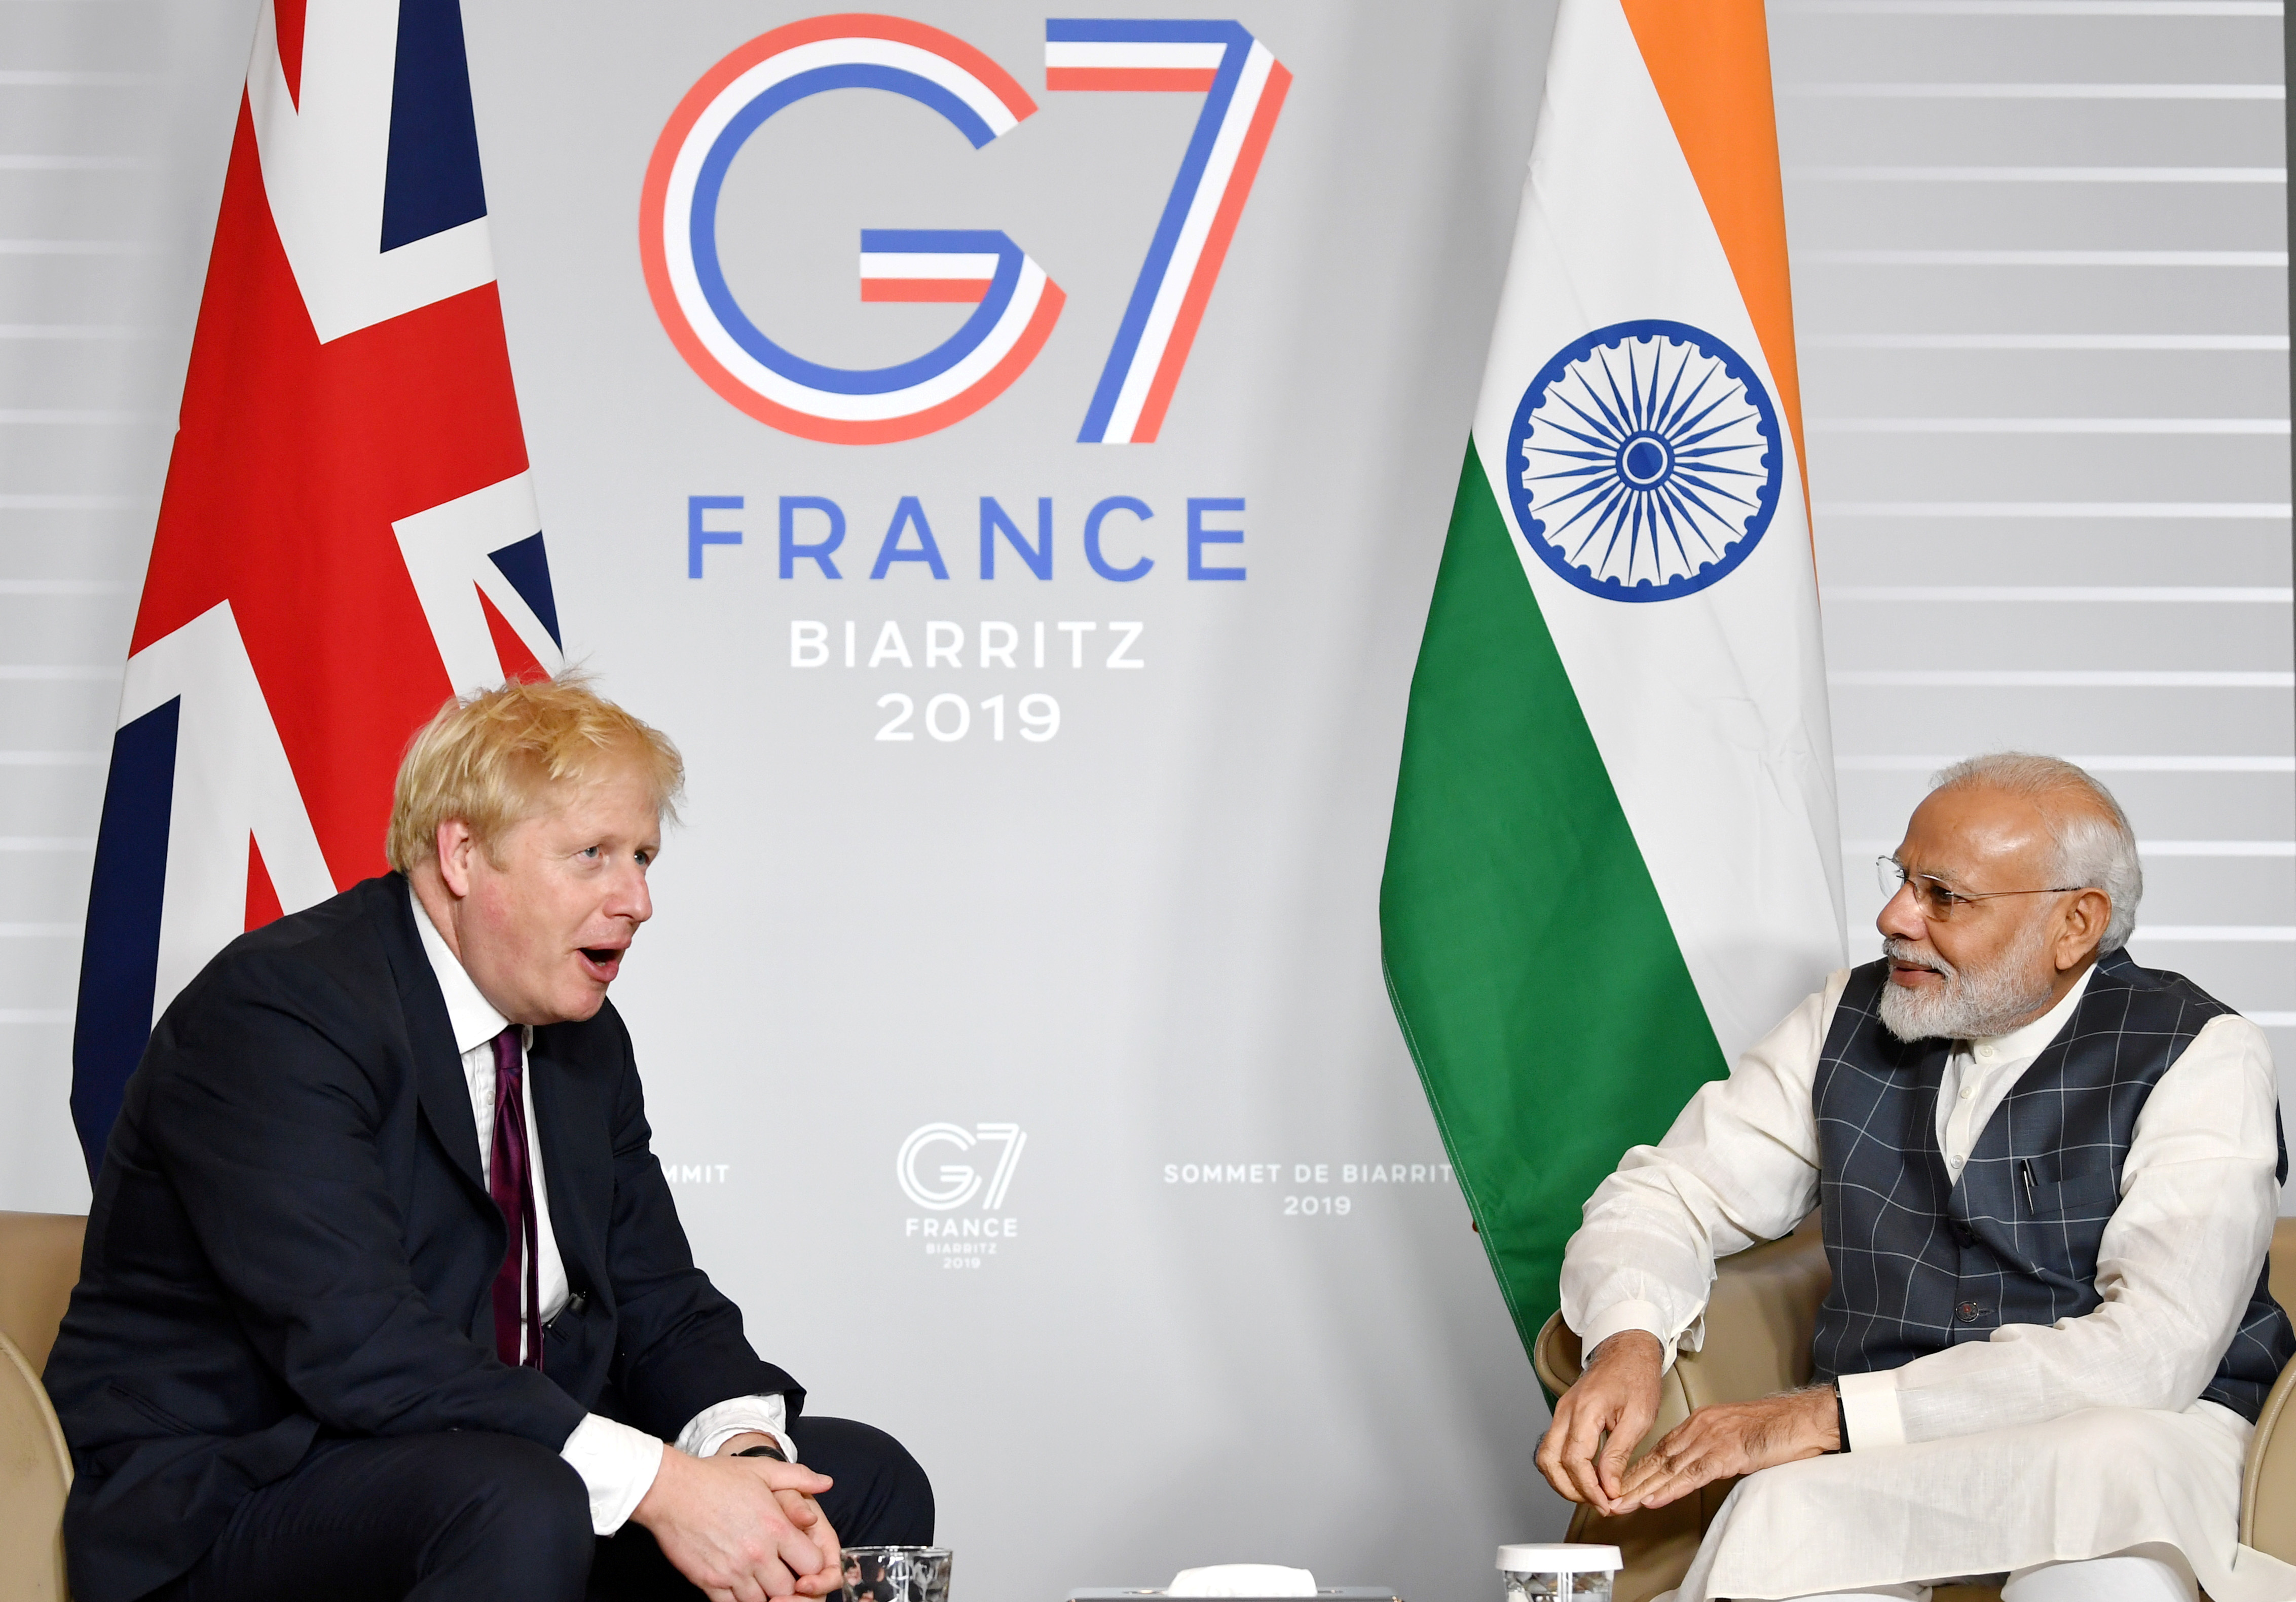 Britain's Prime Minister Boris Johnson meets Indian Prime Minister Narendra Modi at a bilateral meeting during the G7 summit in Biarritz, France August 25, 2019. Jeff J Mitchell/Pool via REUTERS